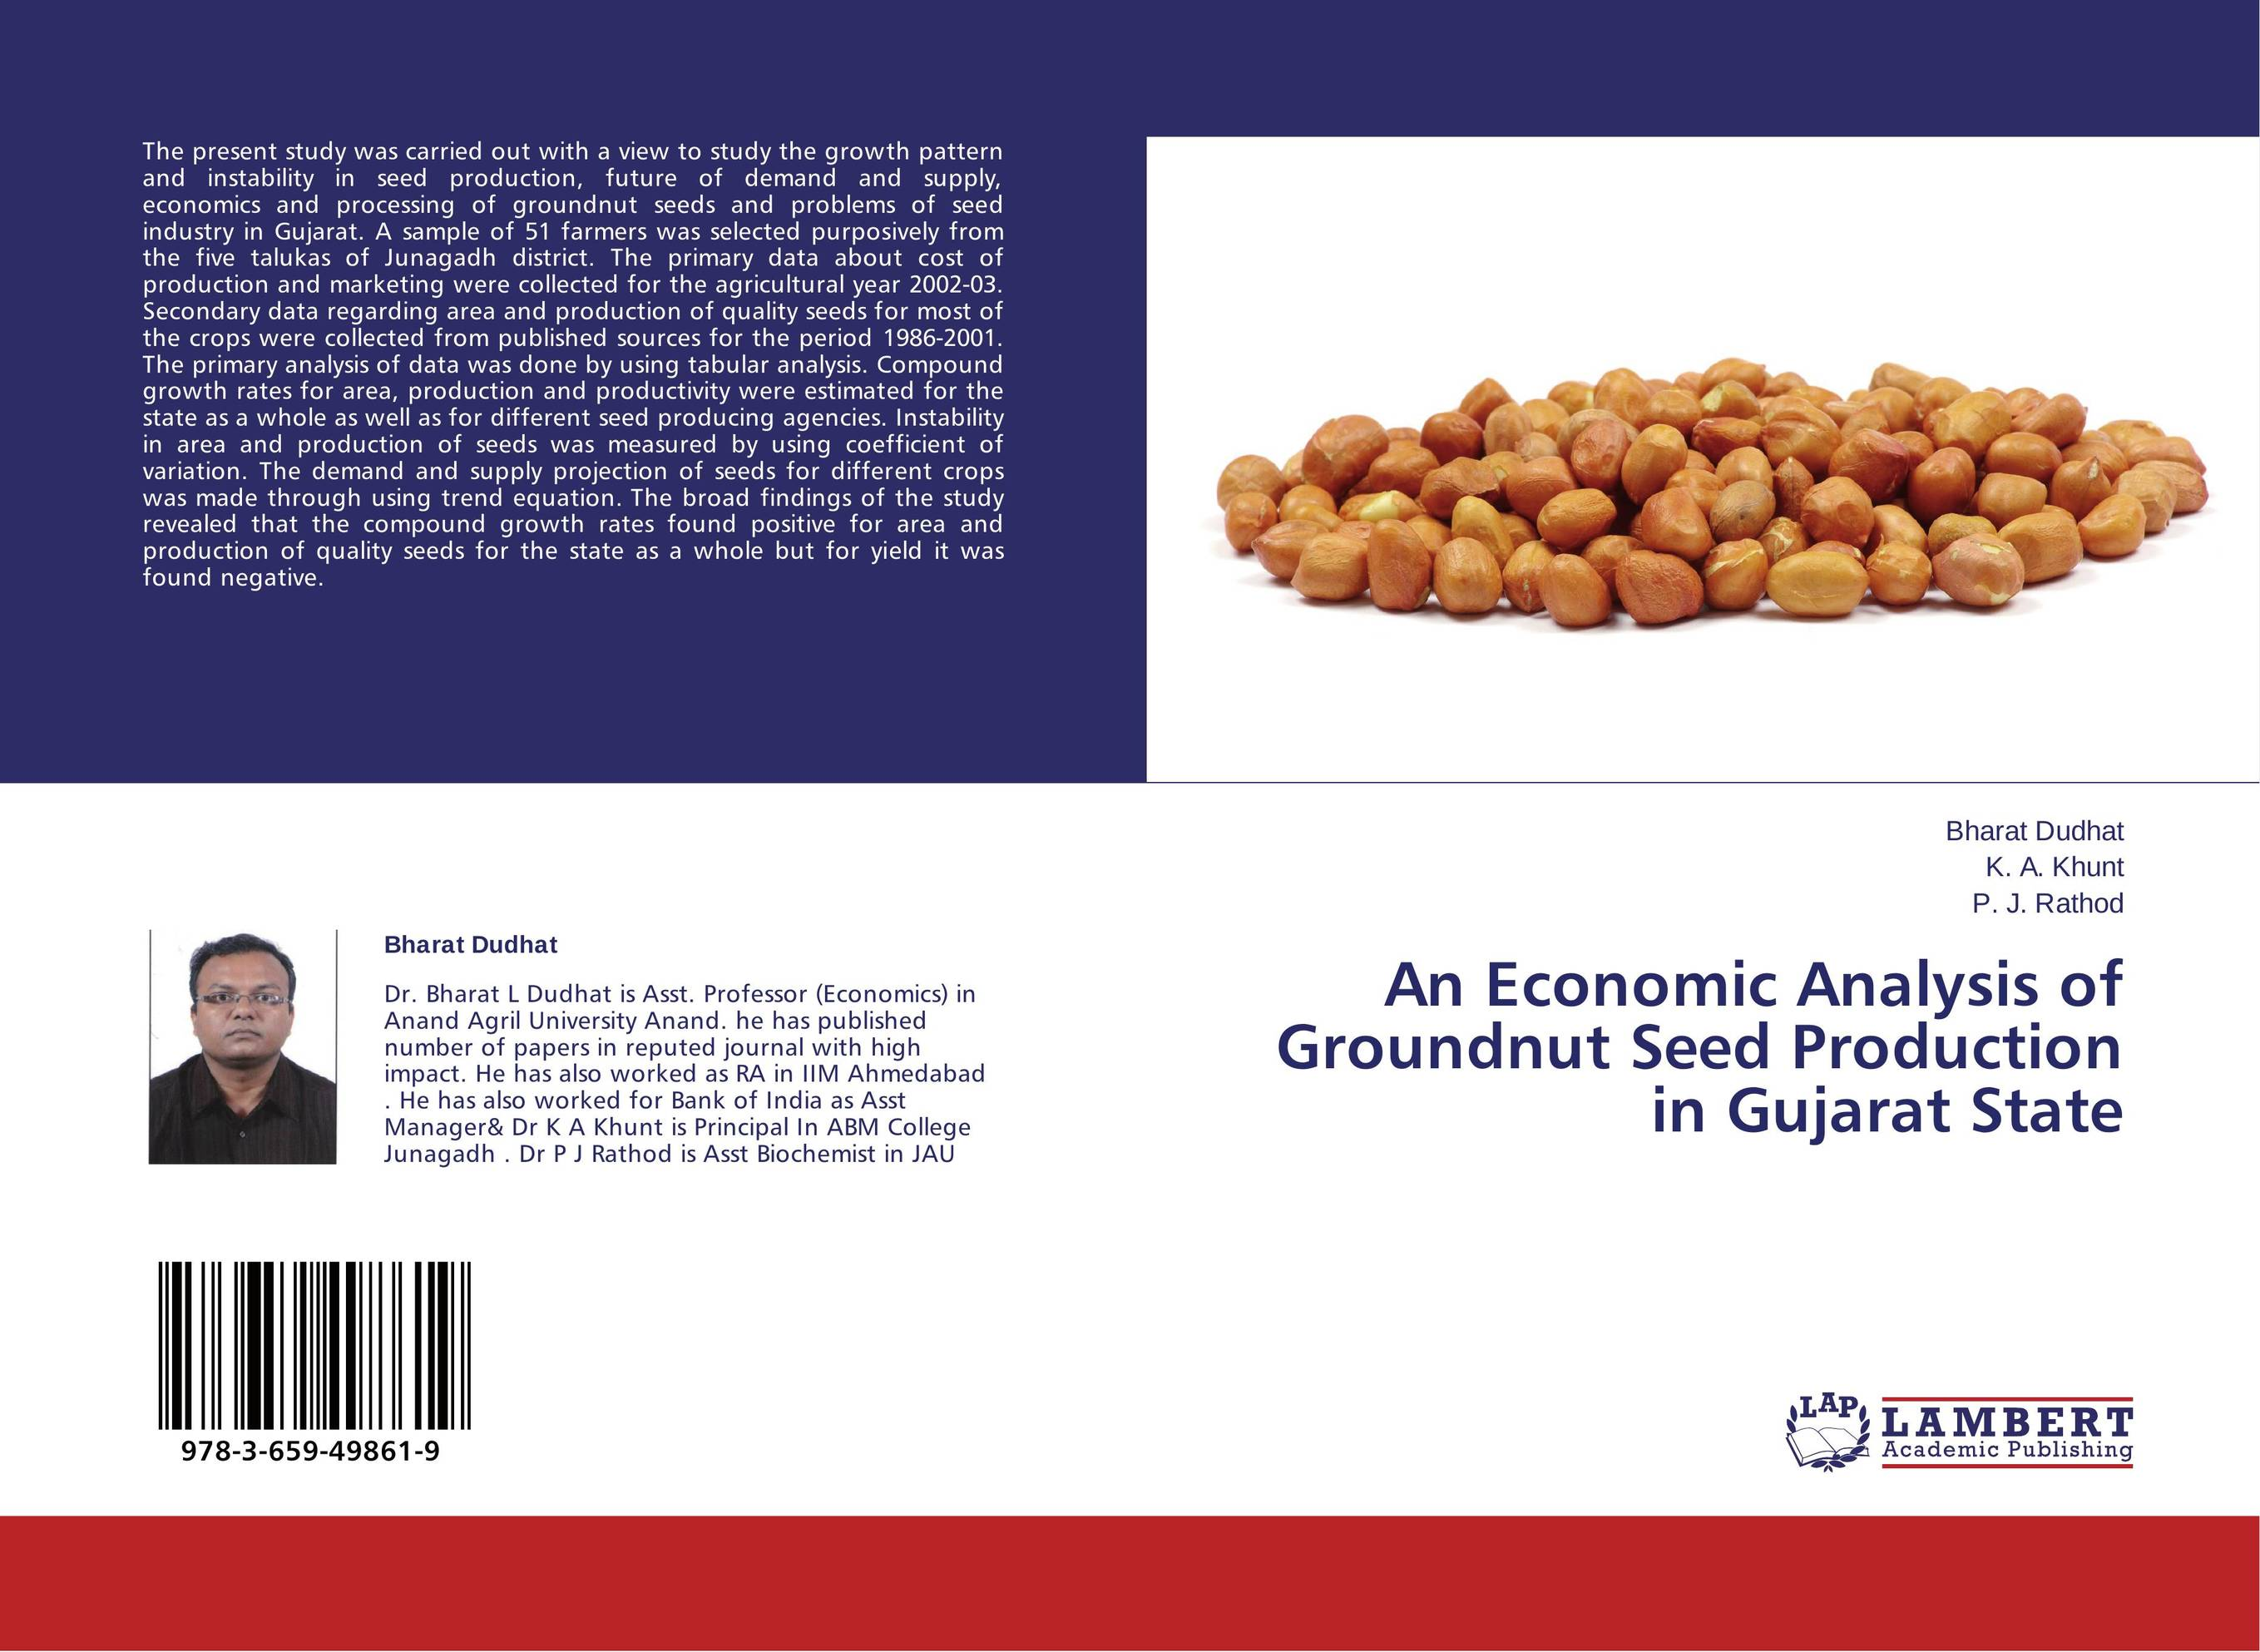 An Economic Analysis of Groundnut Seed Production in Gujarat State